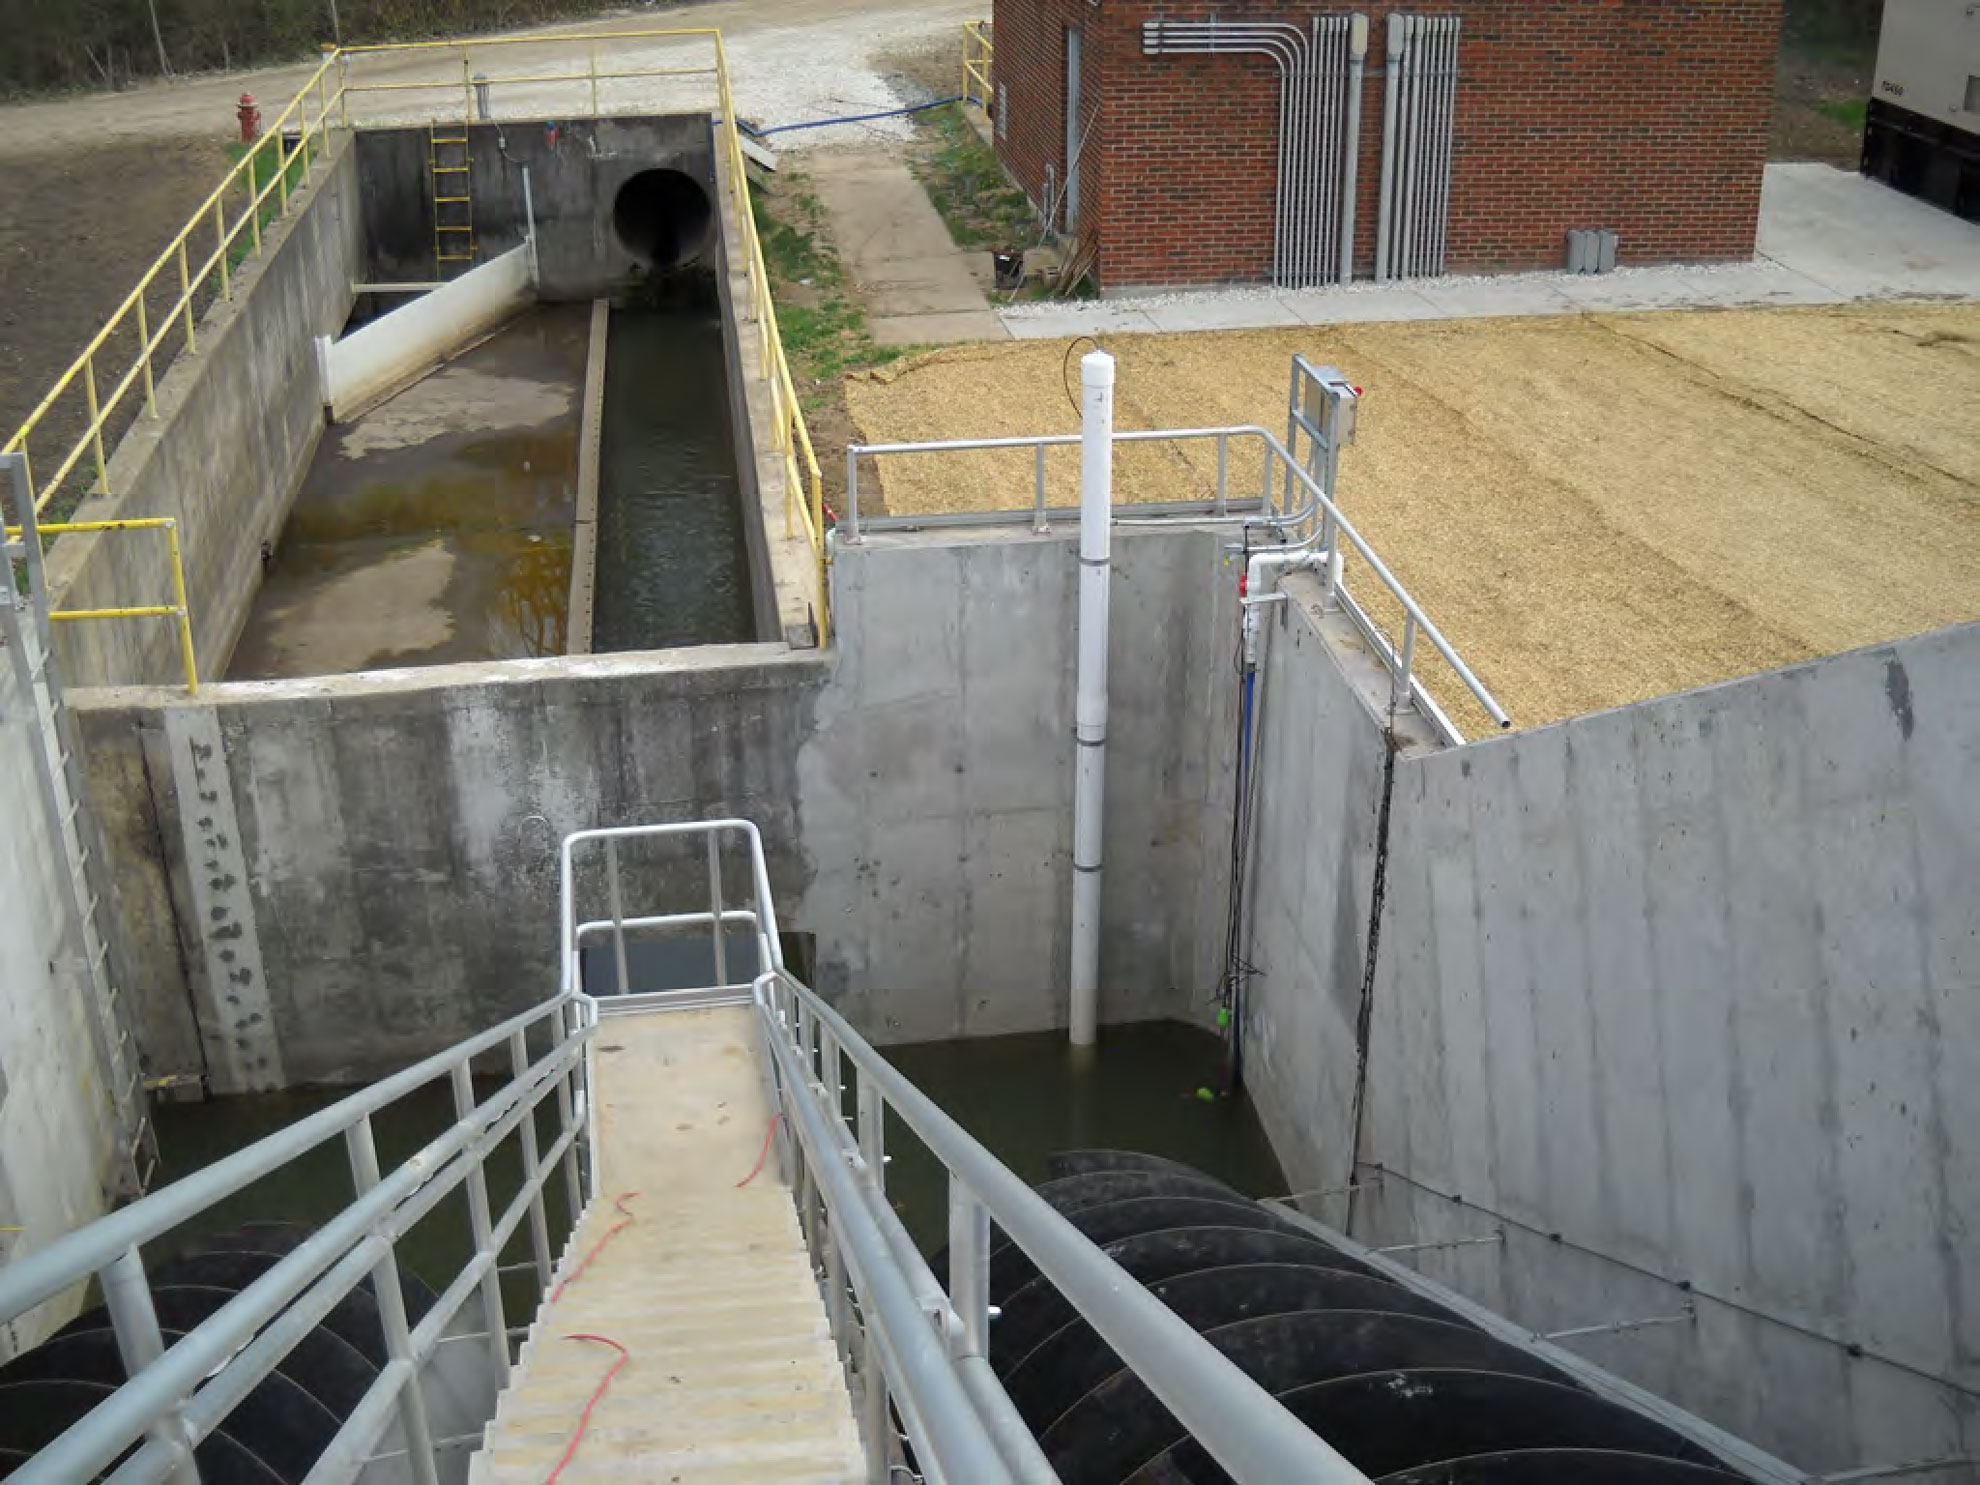 Concrete walk into water area.